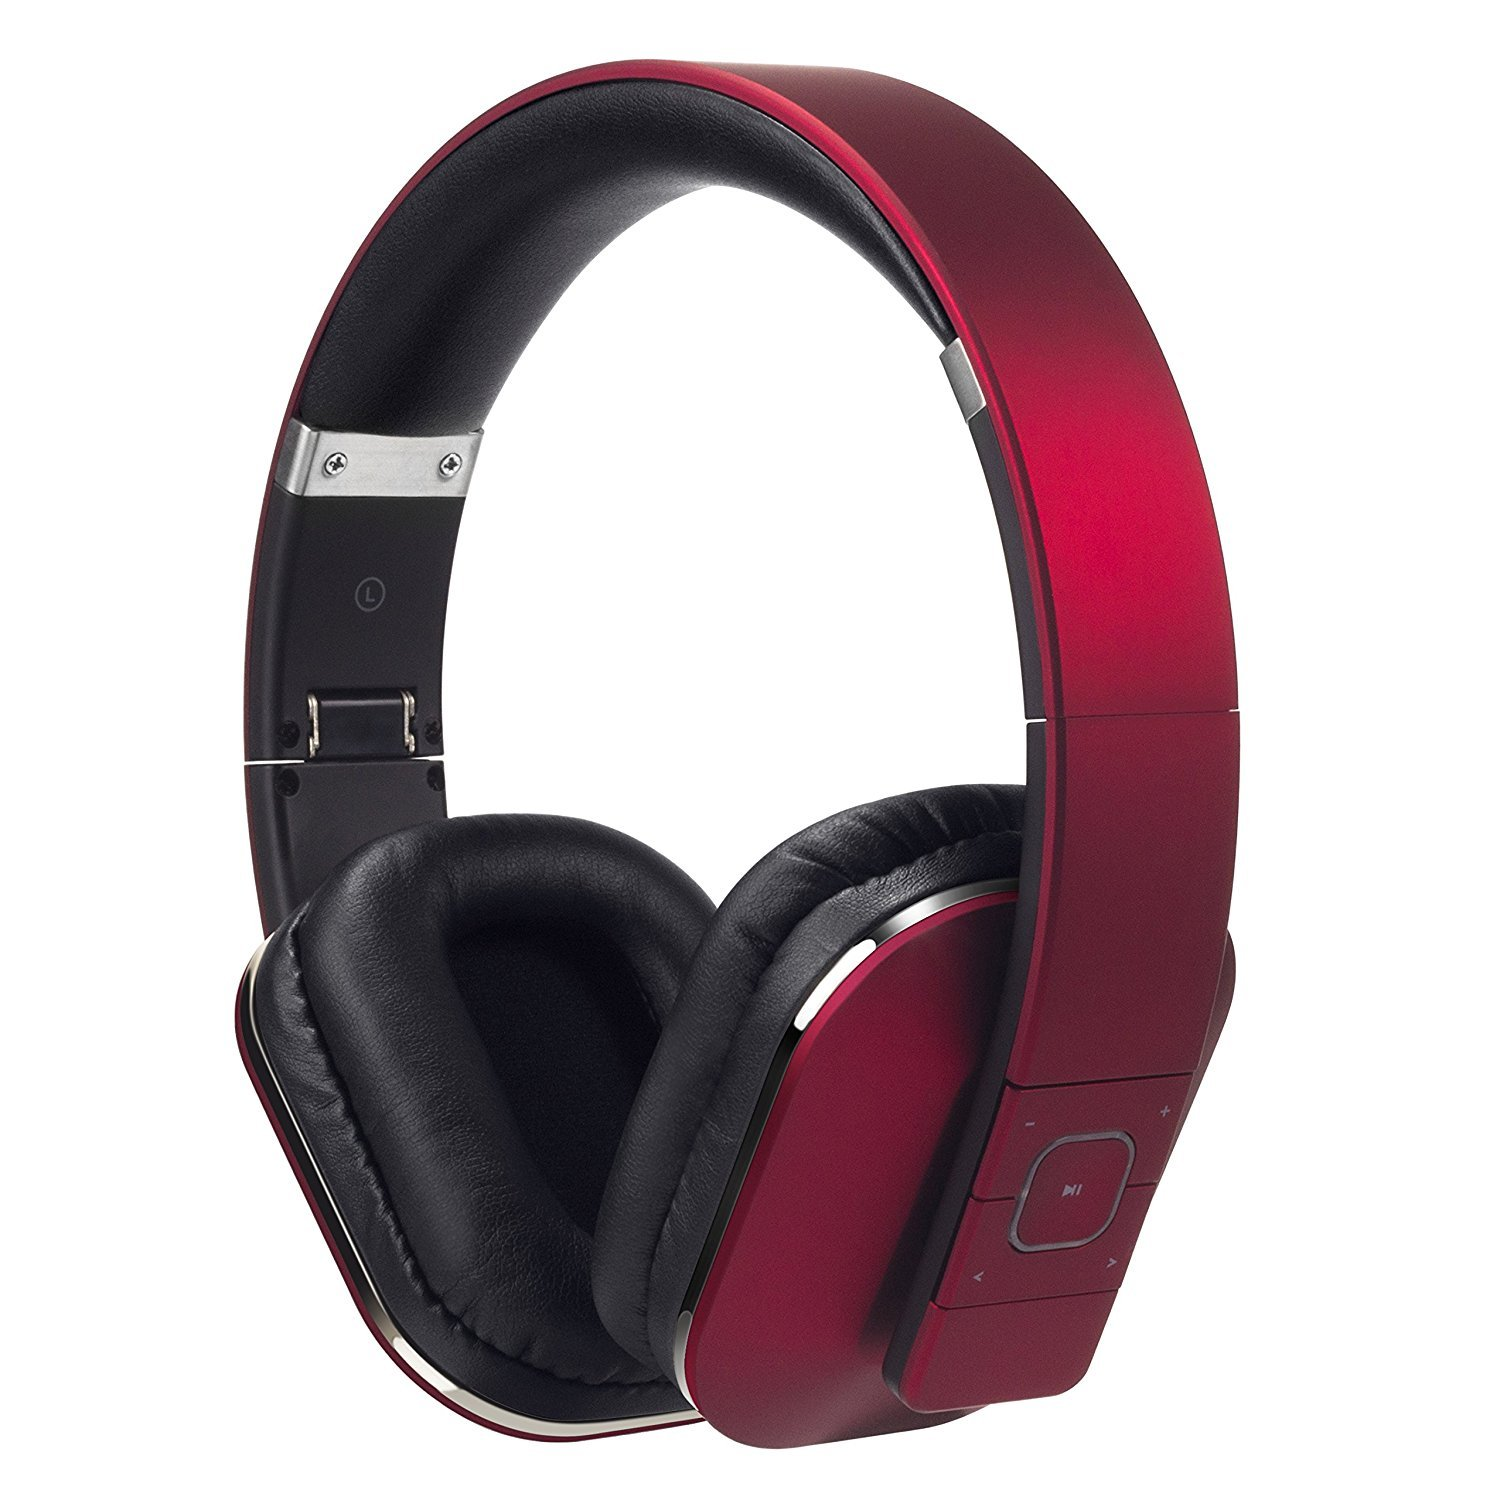 August EP650-Bluetooth Wireless Stereo Headphones - Over Ear Headphones with 3.5mm Wired Audio In-Leather Cushioned-Rechargeable Battery-NFC Tap To Connect and built-in Microphone-Compatible with Mobile Phones, iPad, Laptops, Tablets, etc. (Red) AUG EP650R